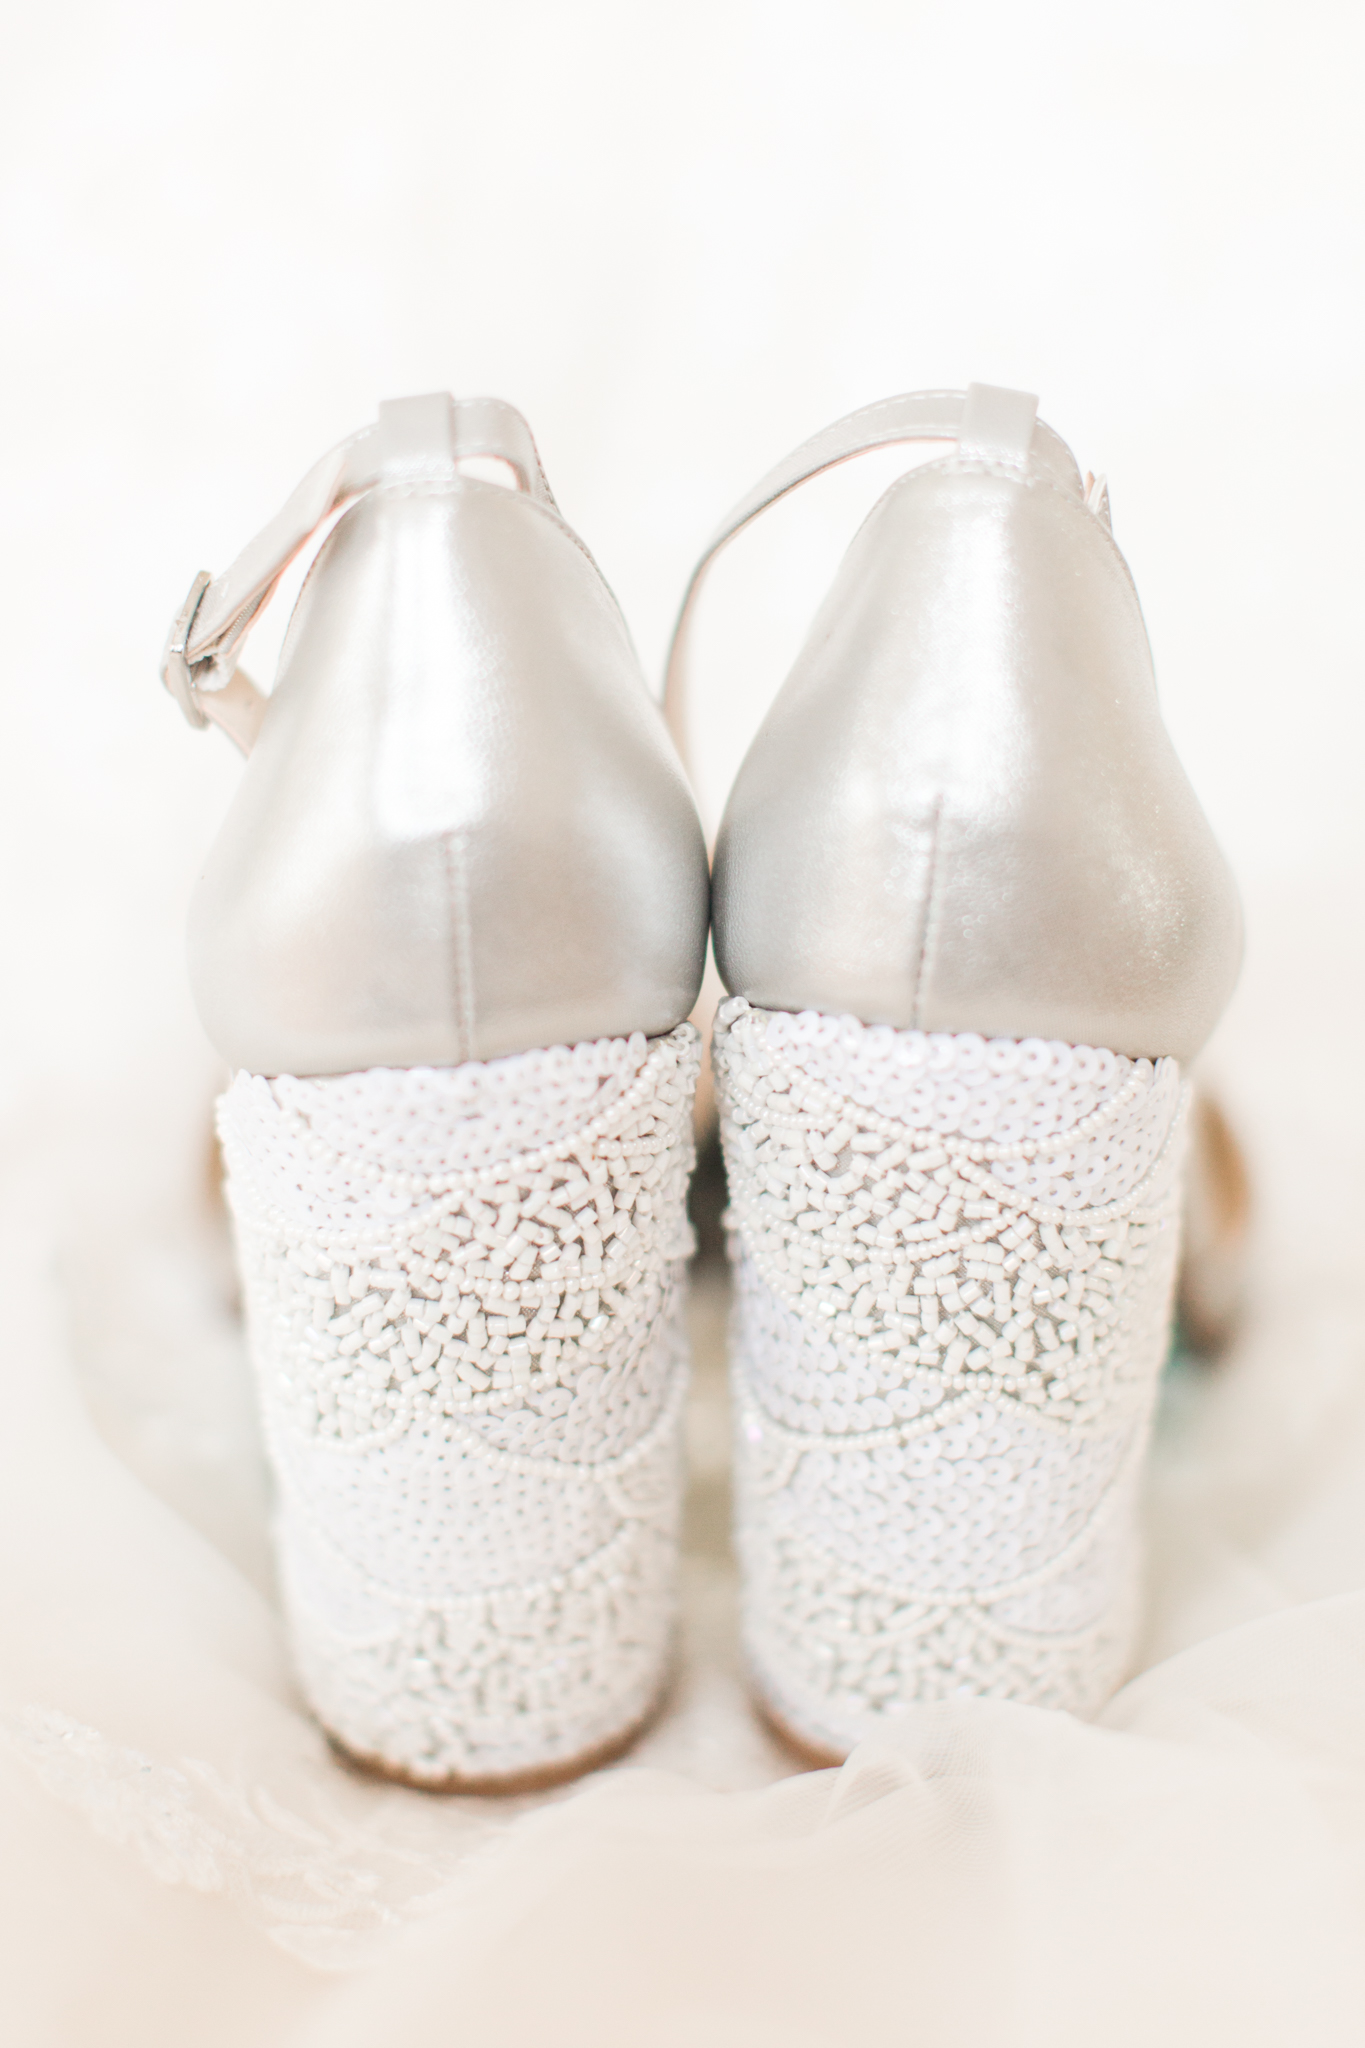 Silver close toes brides shoes with chunky heel peal details in white. - Pearl Weddings & Events